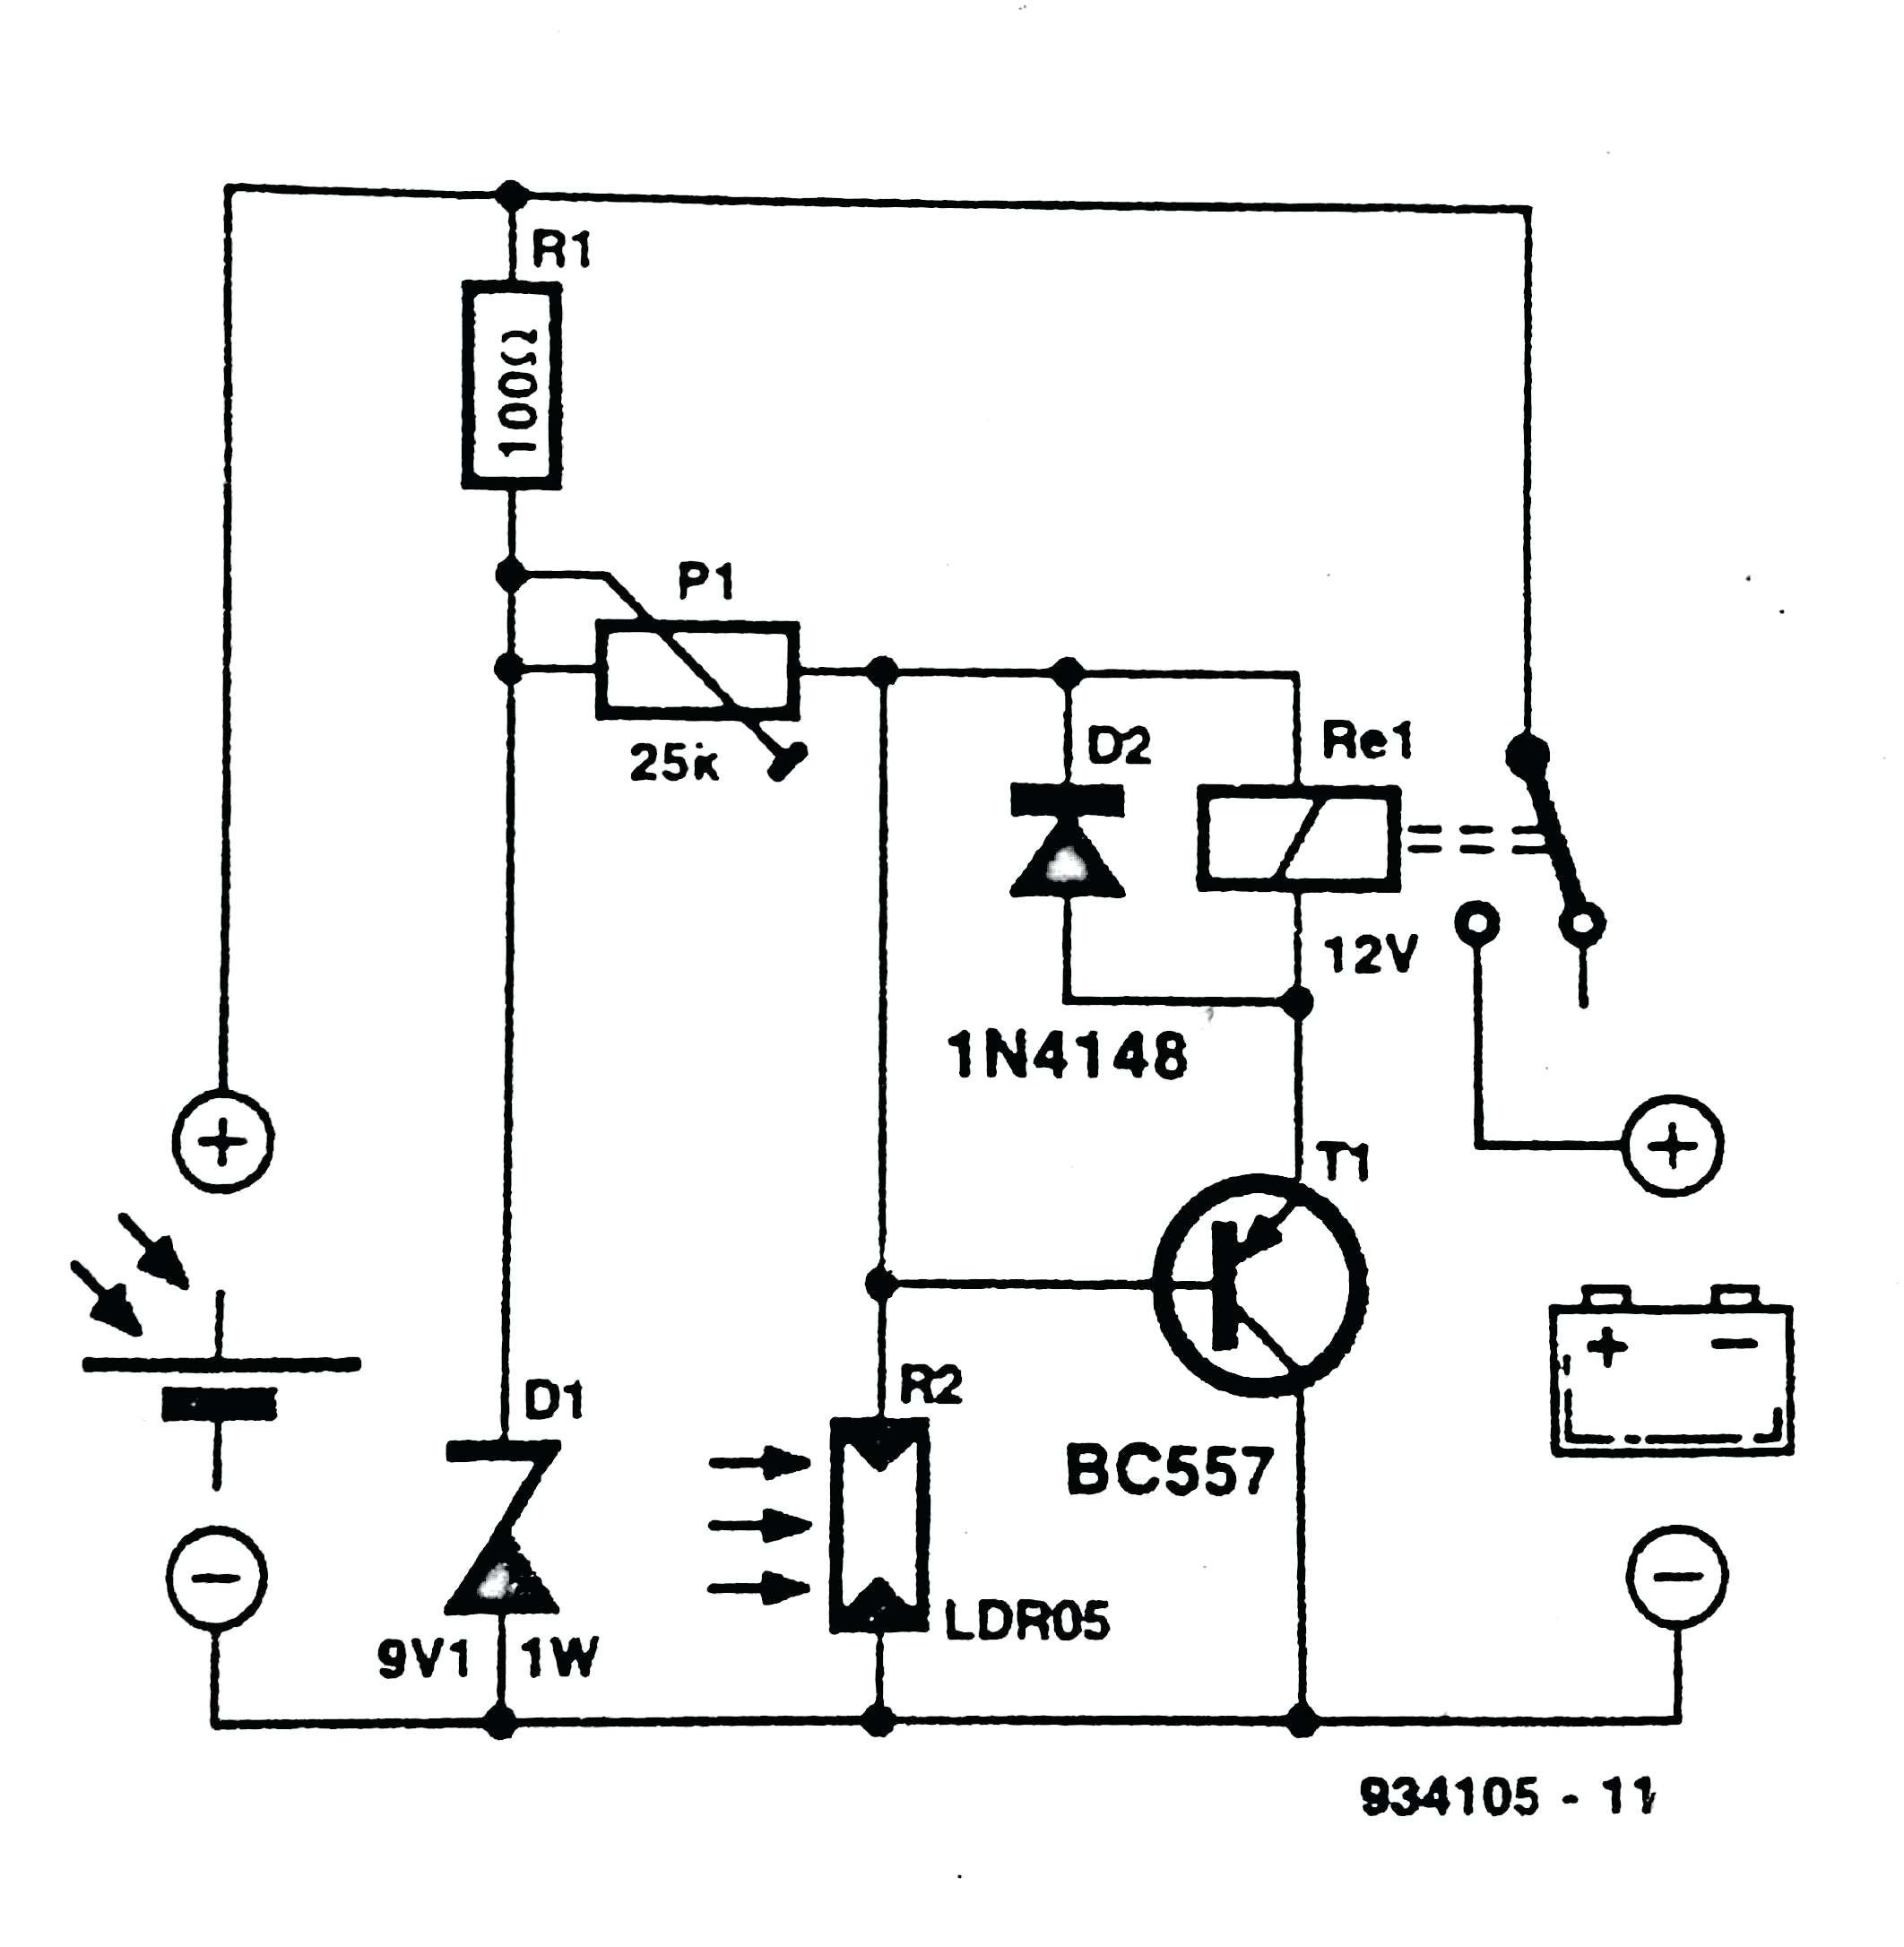 fronius rapid shutdown wiring diagram Download-Sma Inverter Wiring Diagram Fresh Fronius Inverter Wiring Diagram Valid Solar Net Metering Wiring 7-c